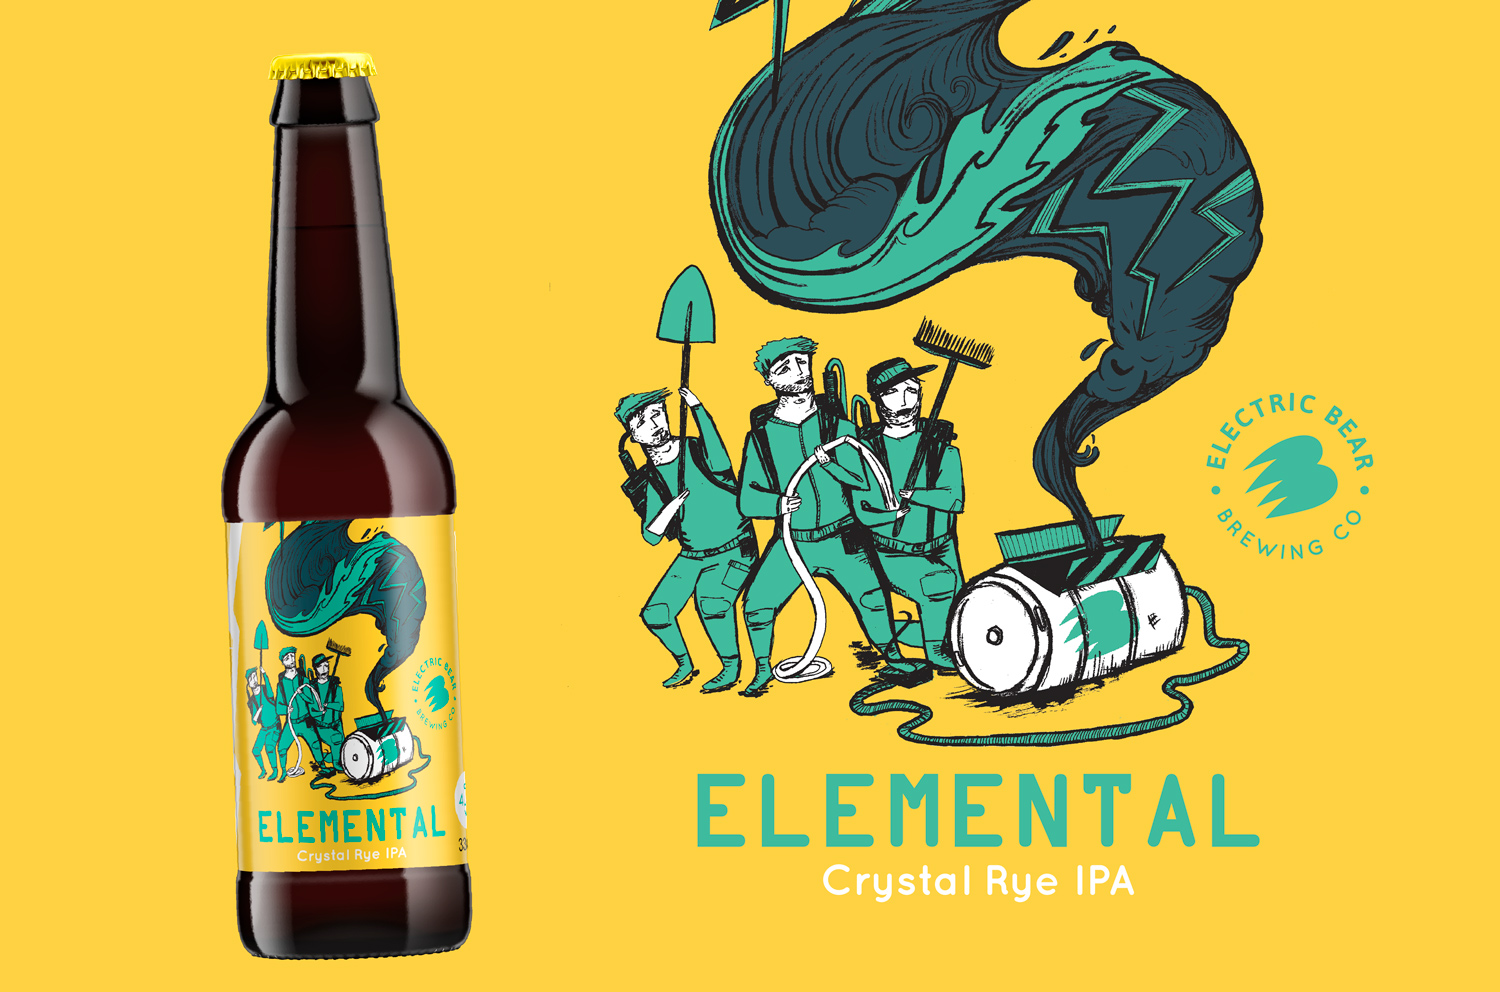 Ghost busters inspired illustration for beer label